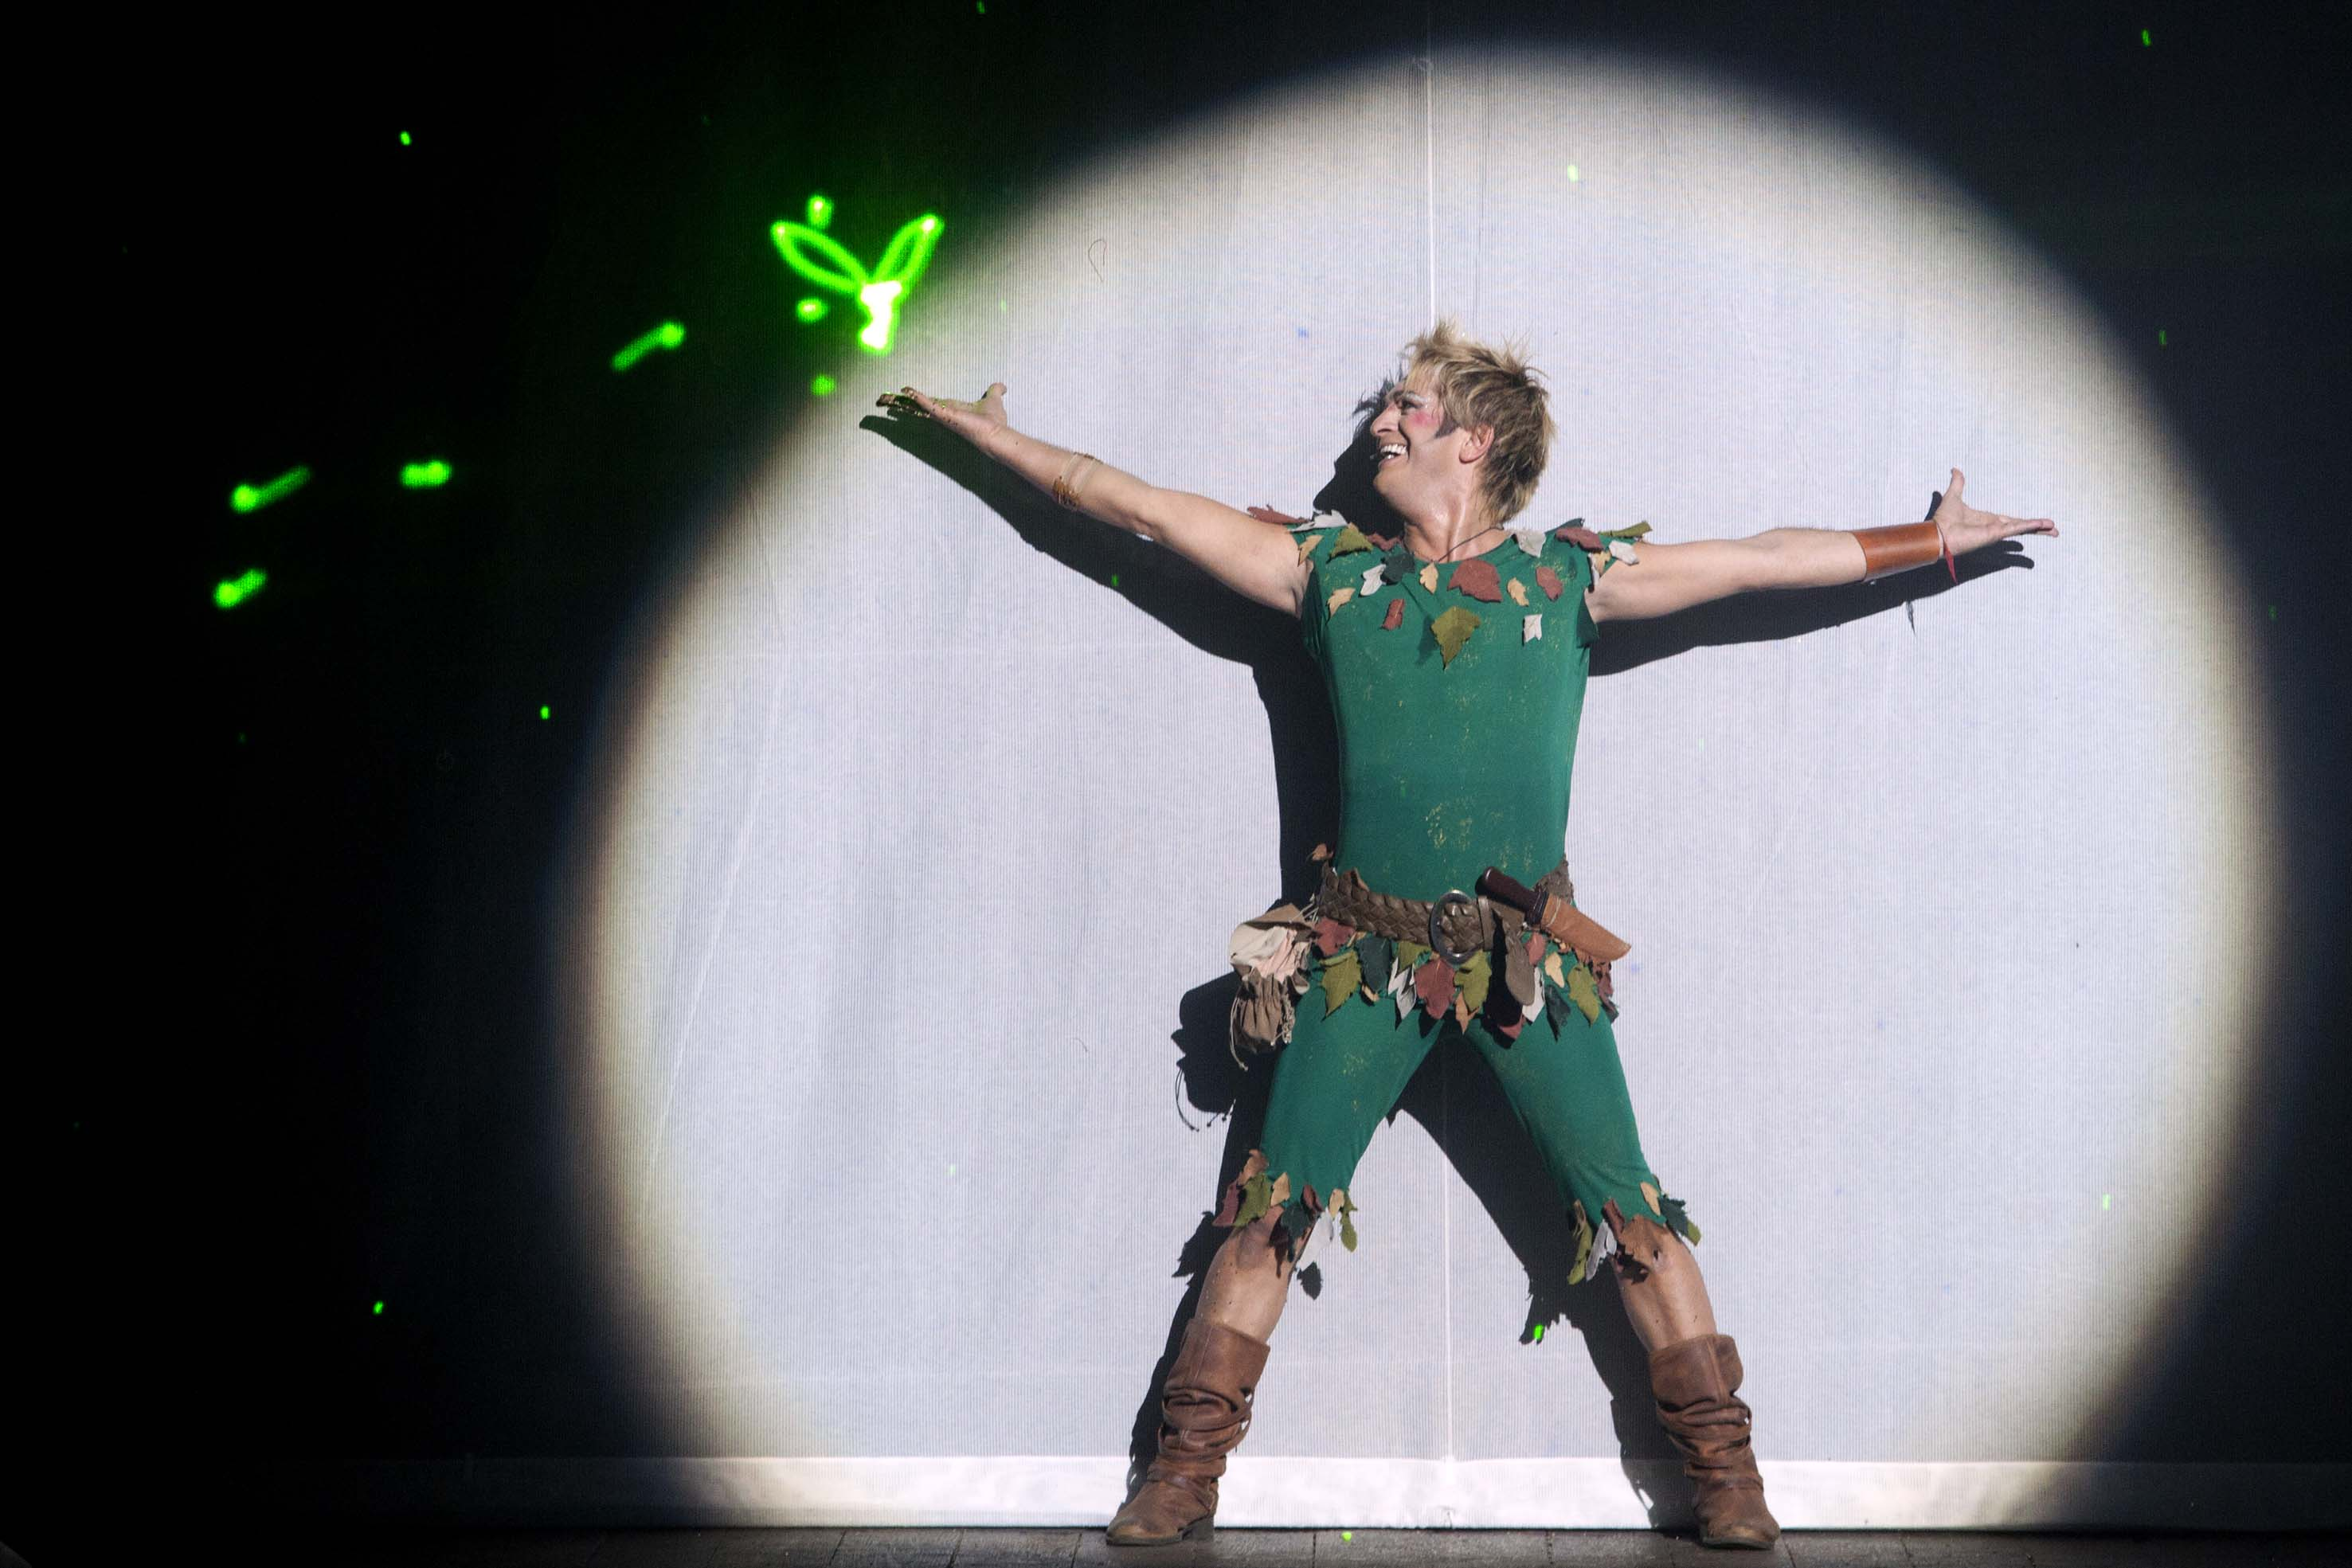 MANUEL FRATTINI E MARTHA ROSSI: PETER PAN IL MUSICAL